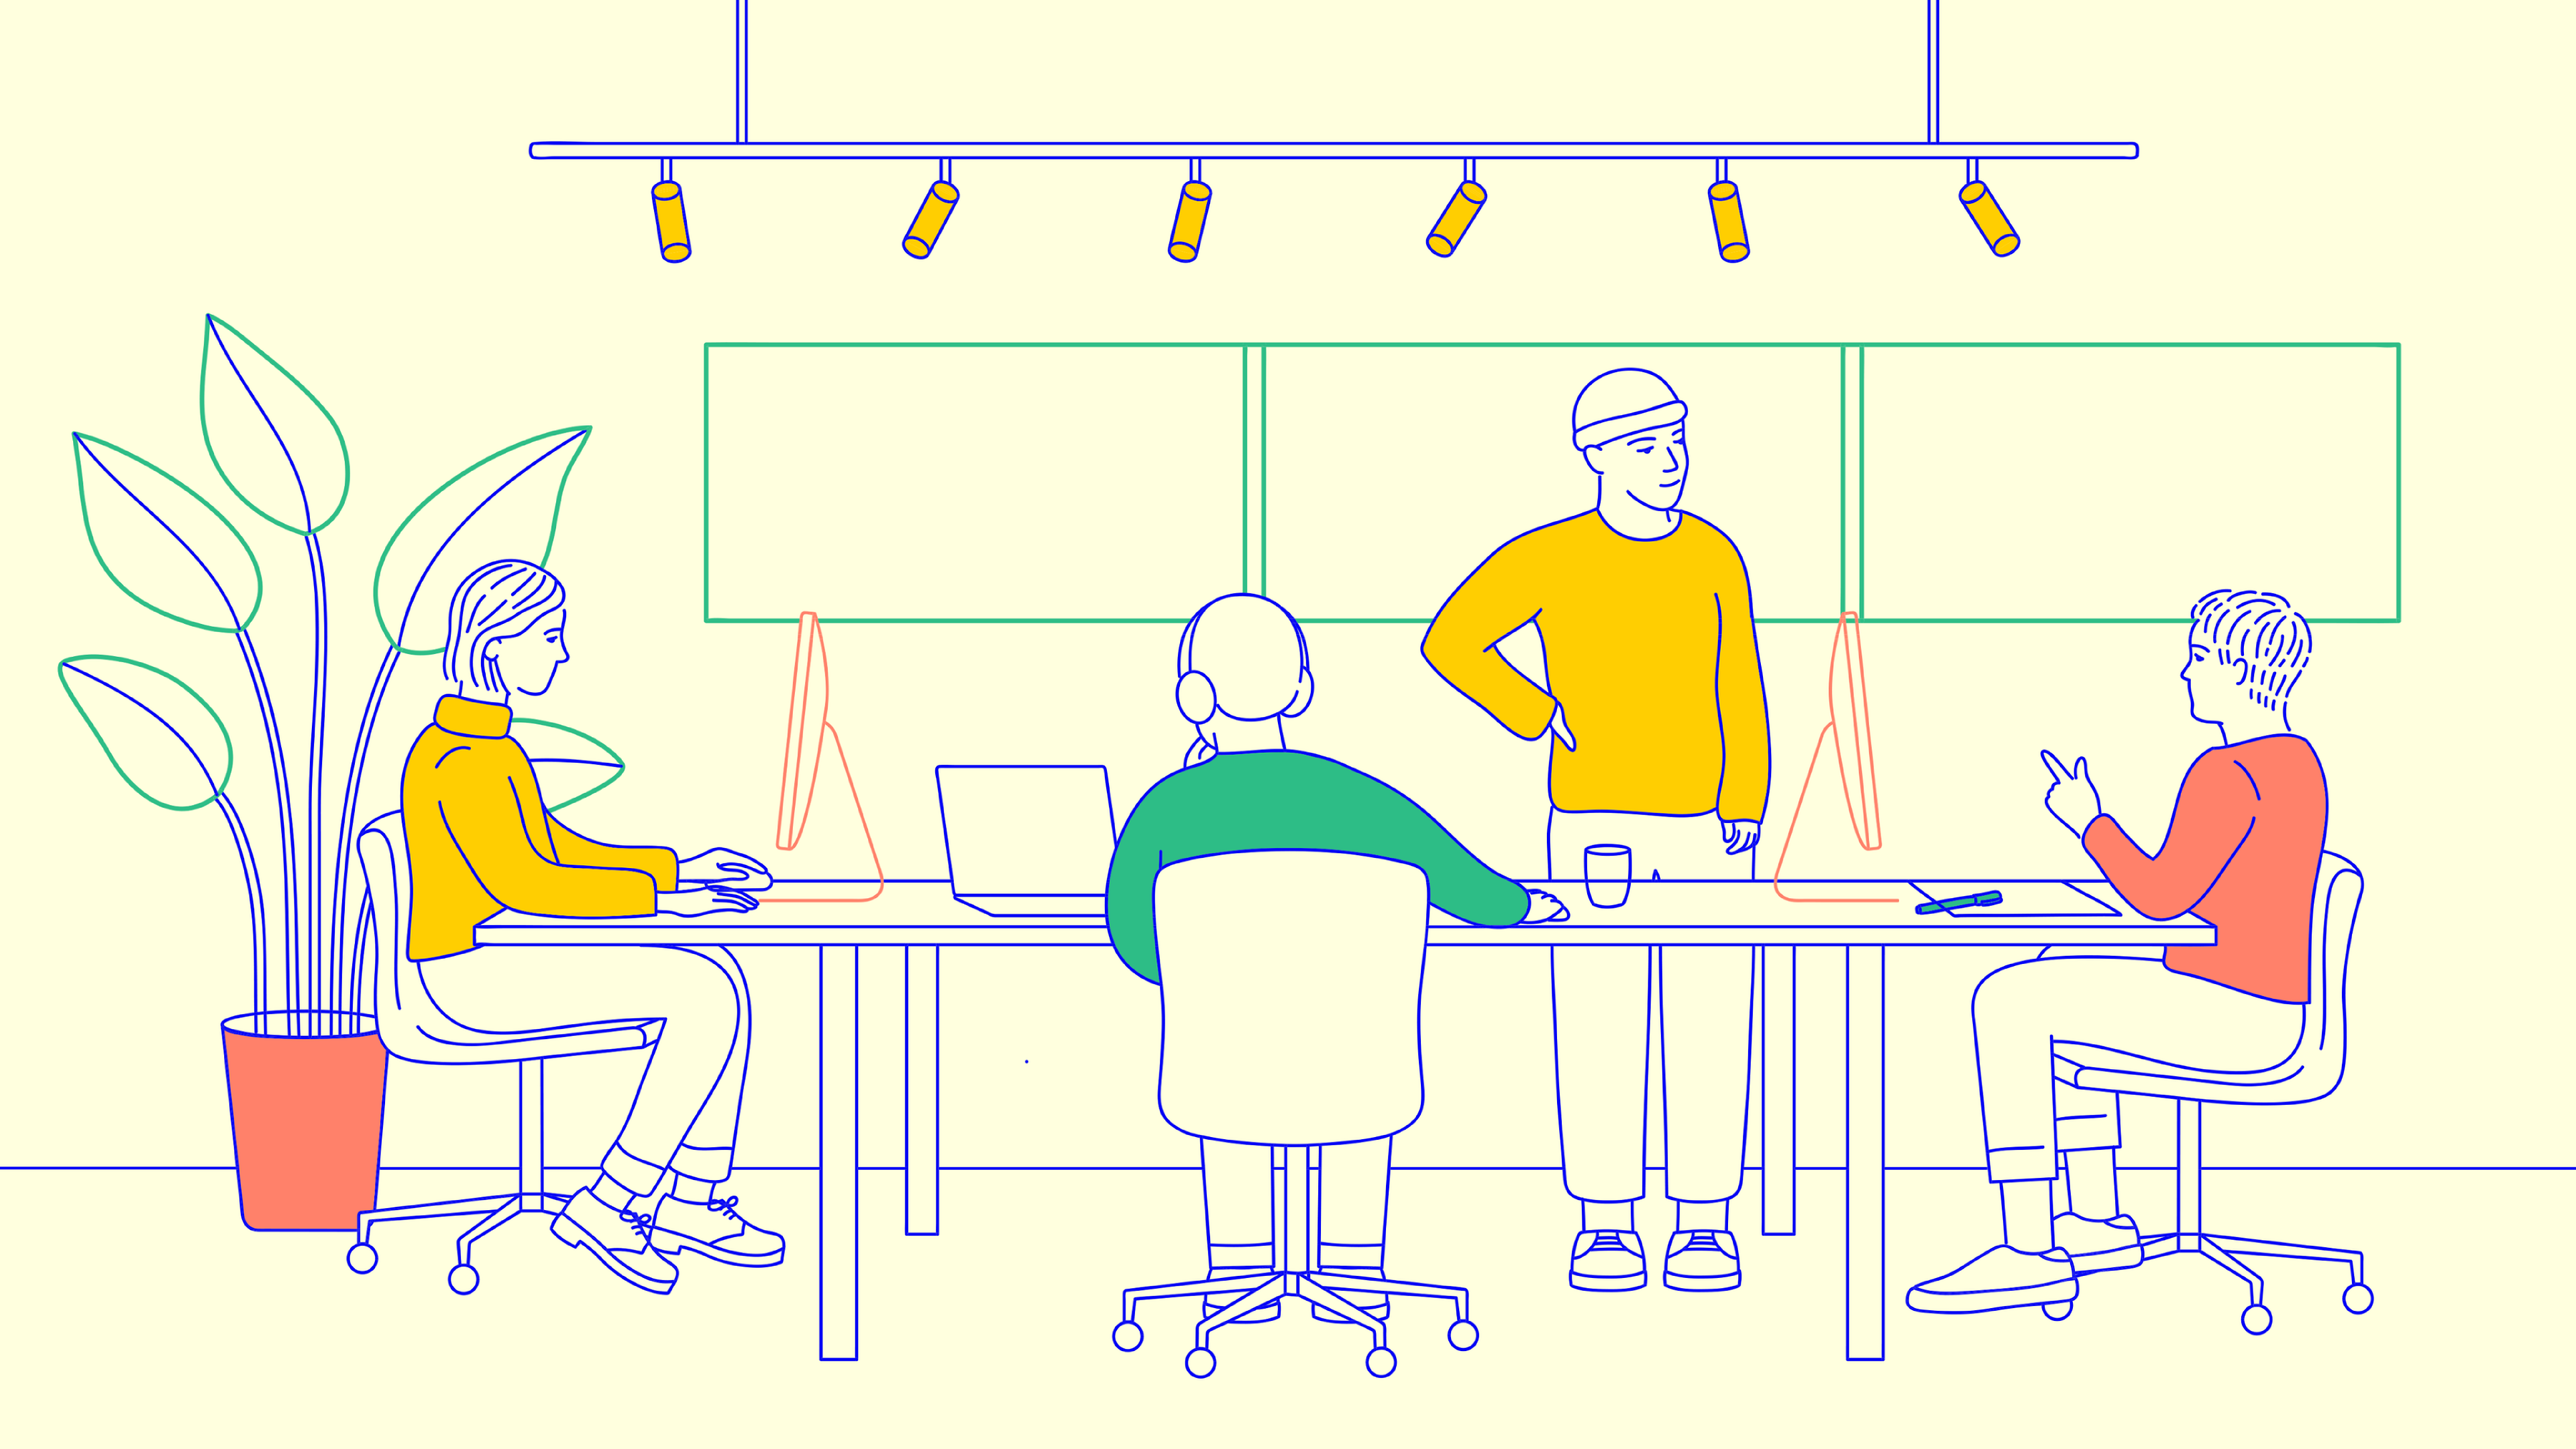 illustration of a round table discussion in a modern office setting